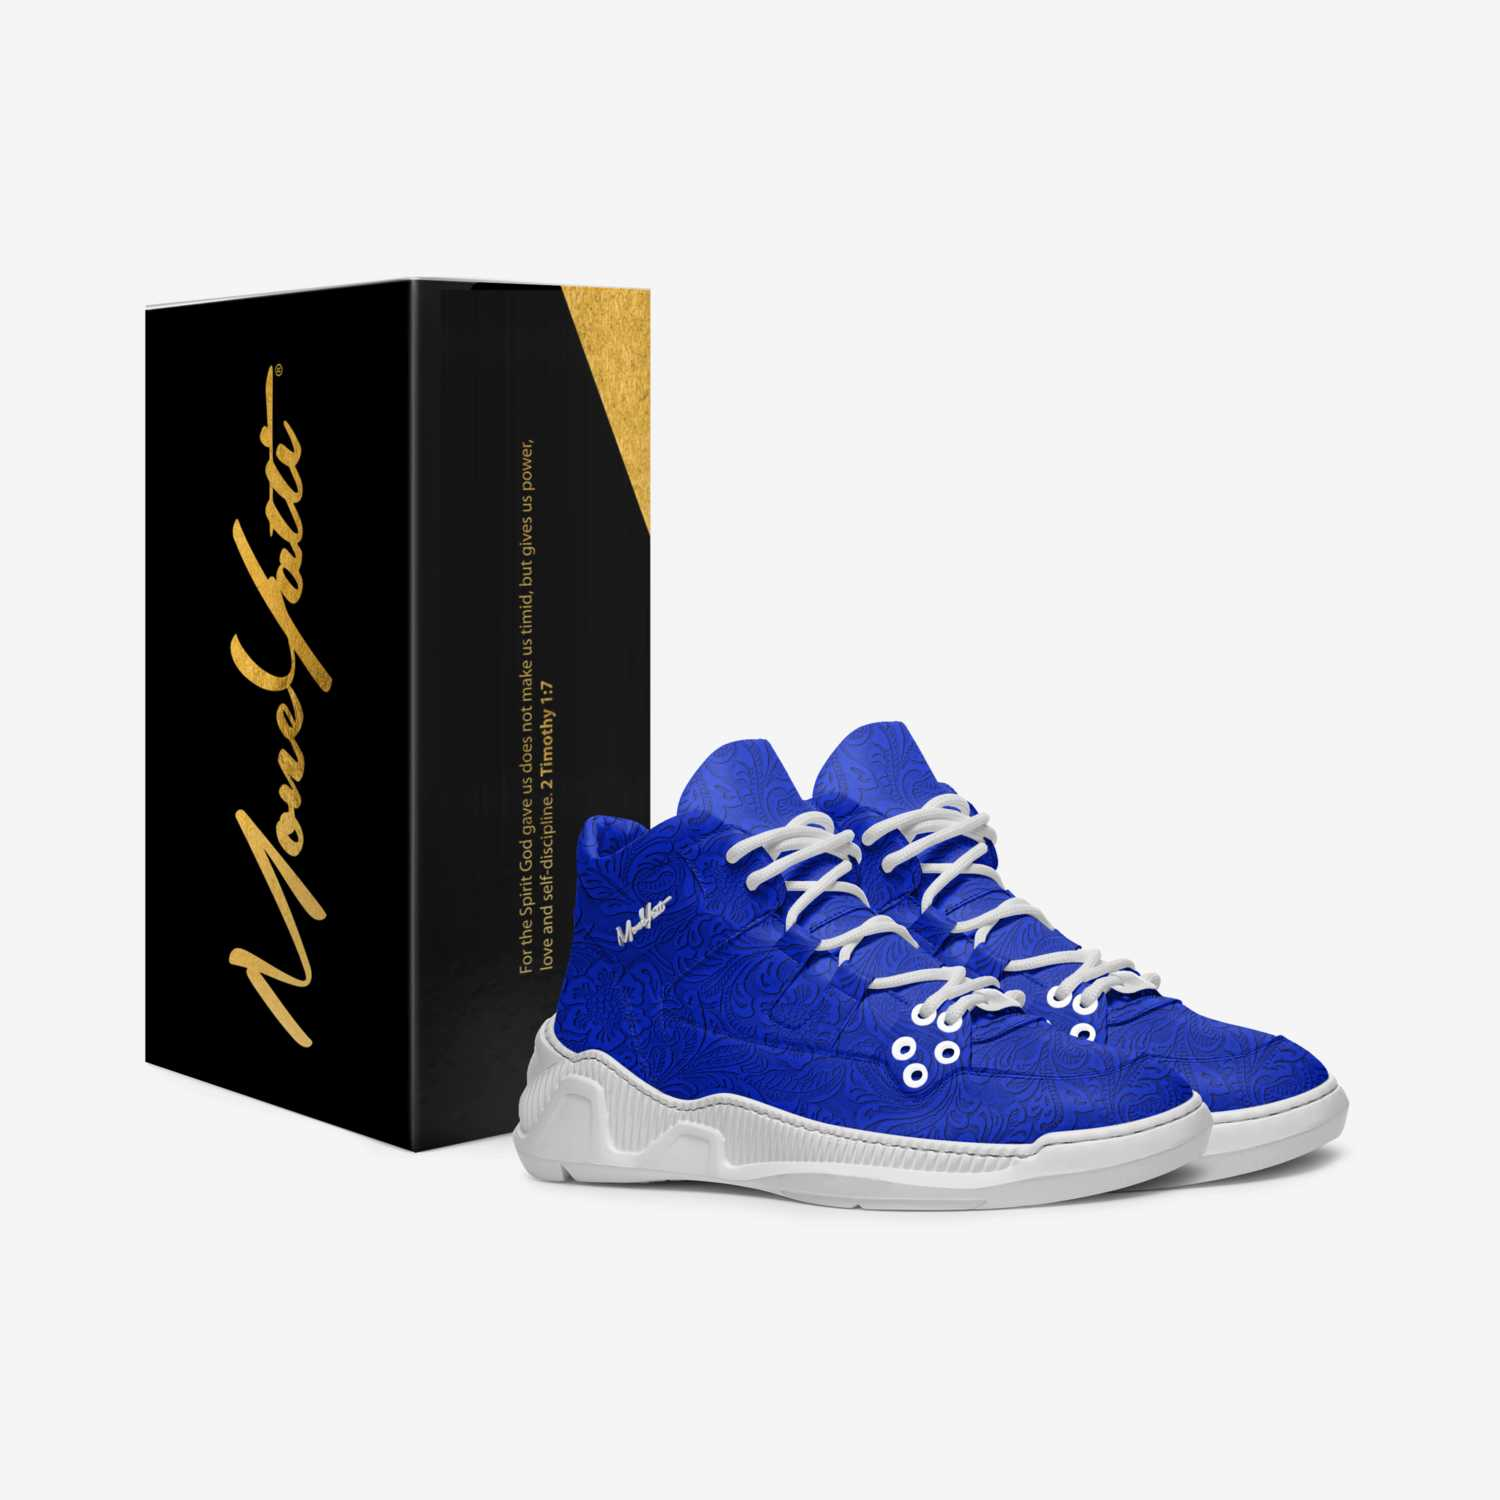 Masterpiece 003 custom made in Italy shoes by Moneyatti Brand | Box view